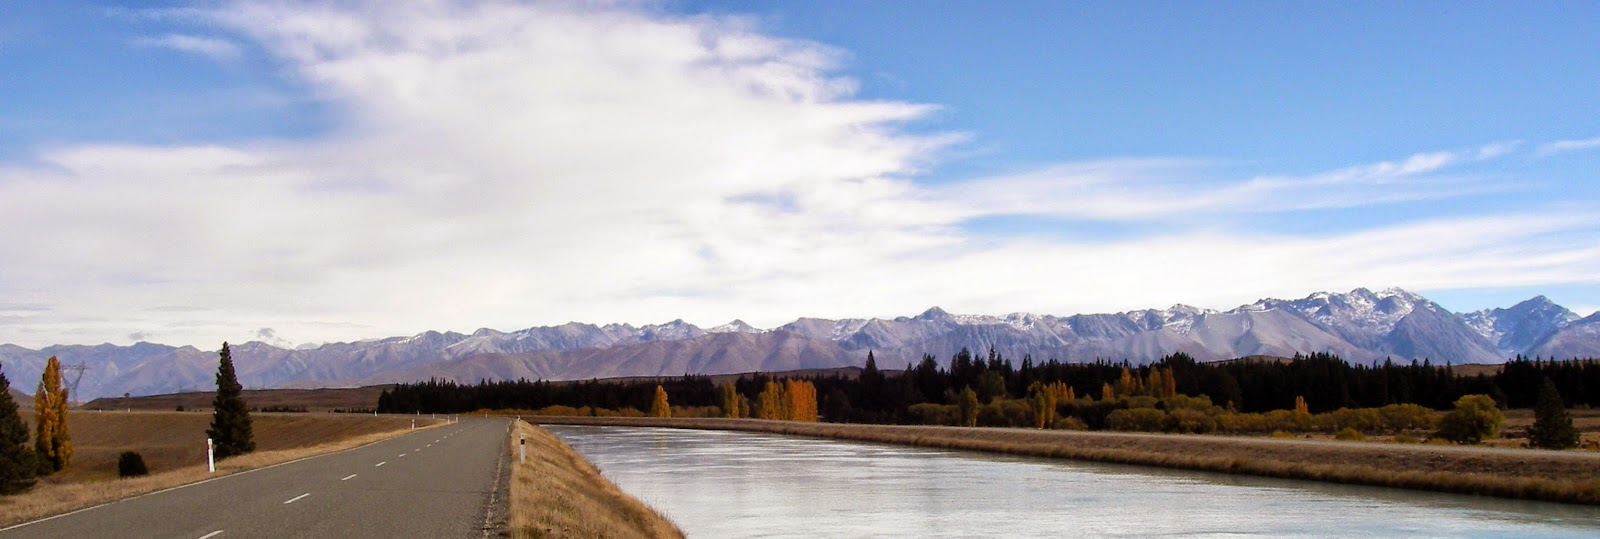 View of the Southern Alps, New Zealand